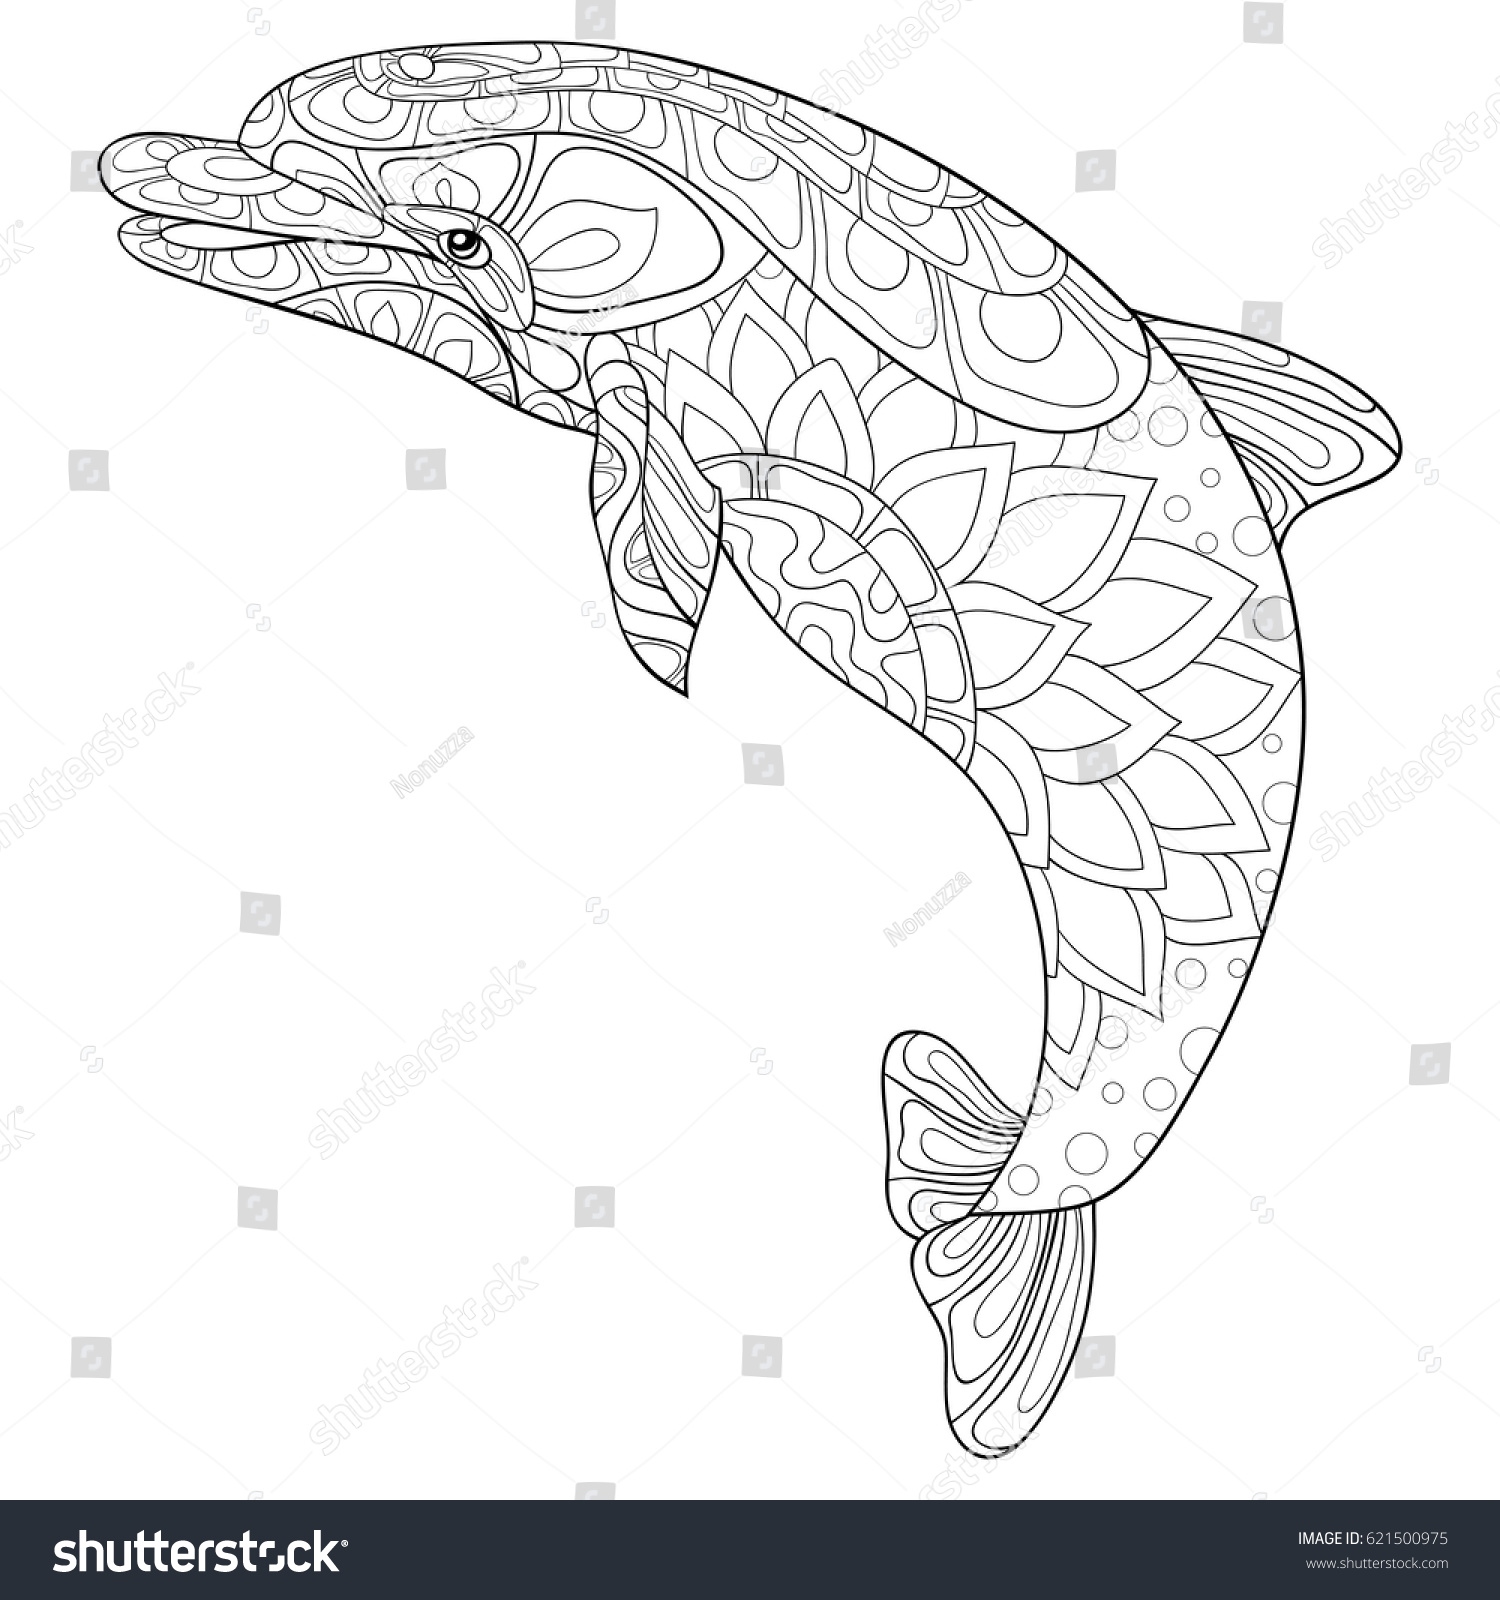 Adult Coloring Page Dolphin Art Style Stock Vector 621500975 ...